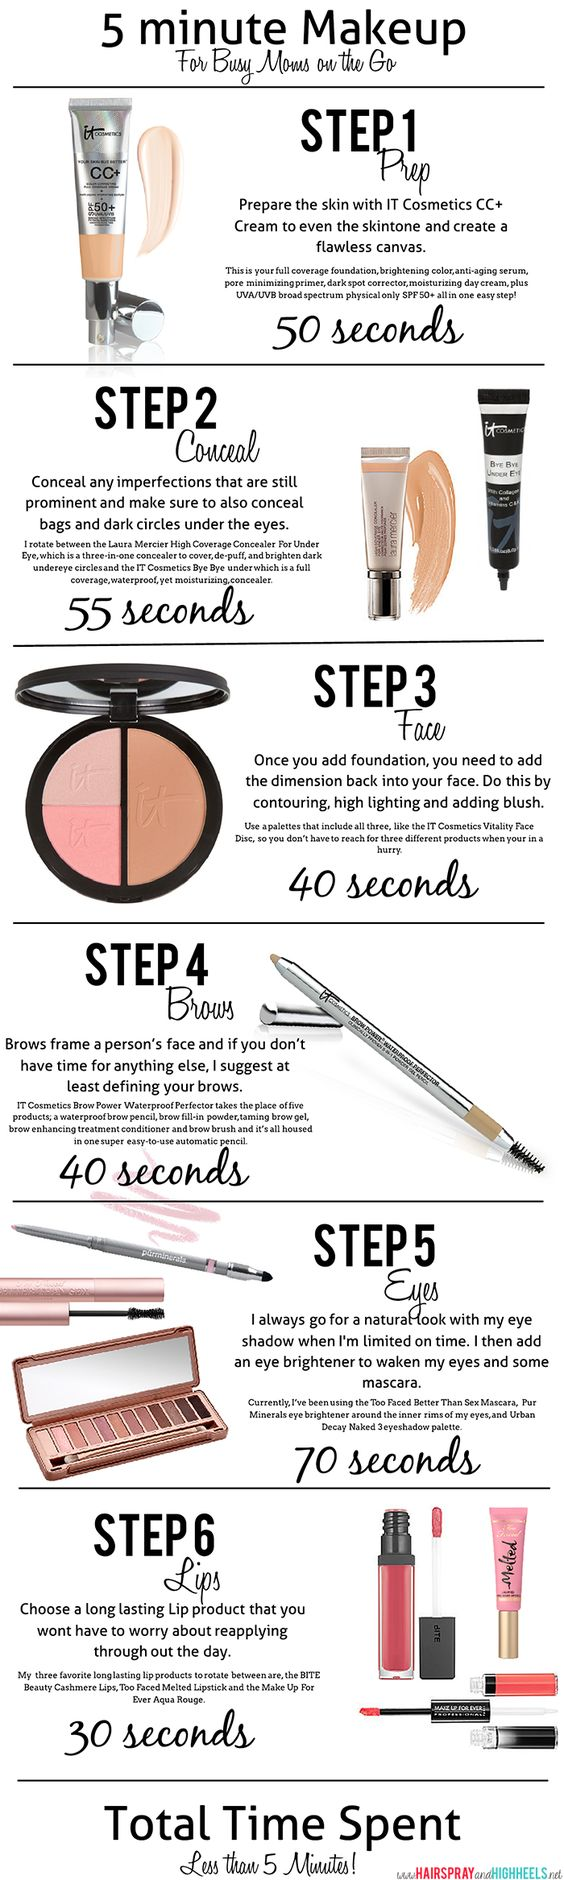 7 Unexpected Ways to Make Your Everyday Beauty Routine Easier